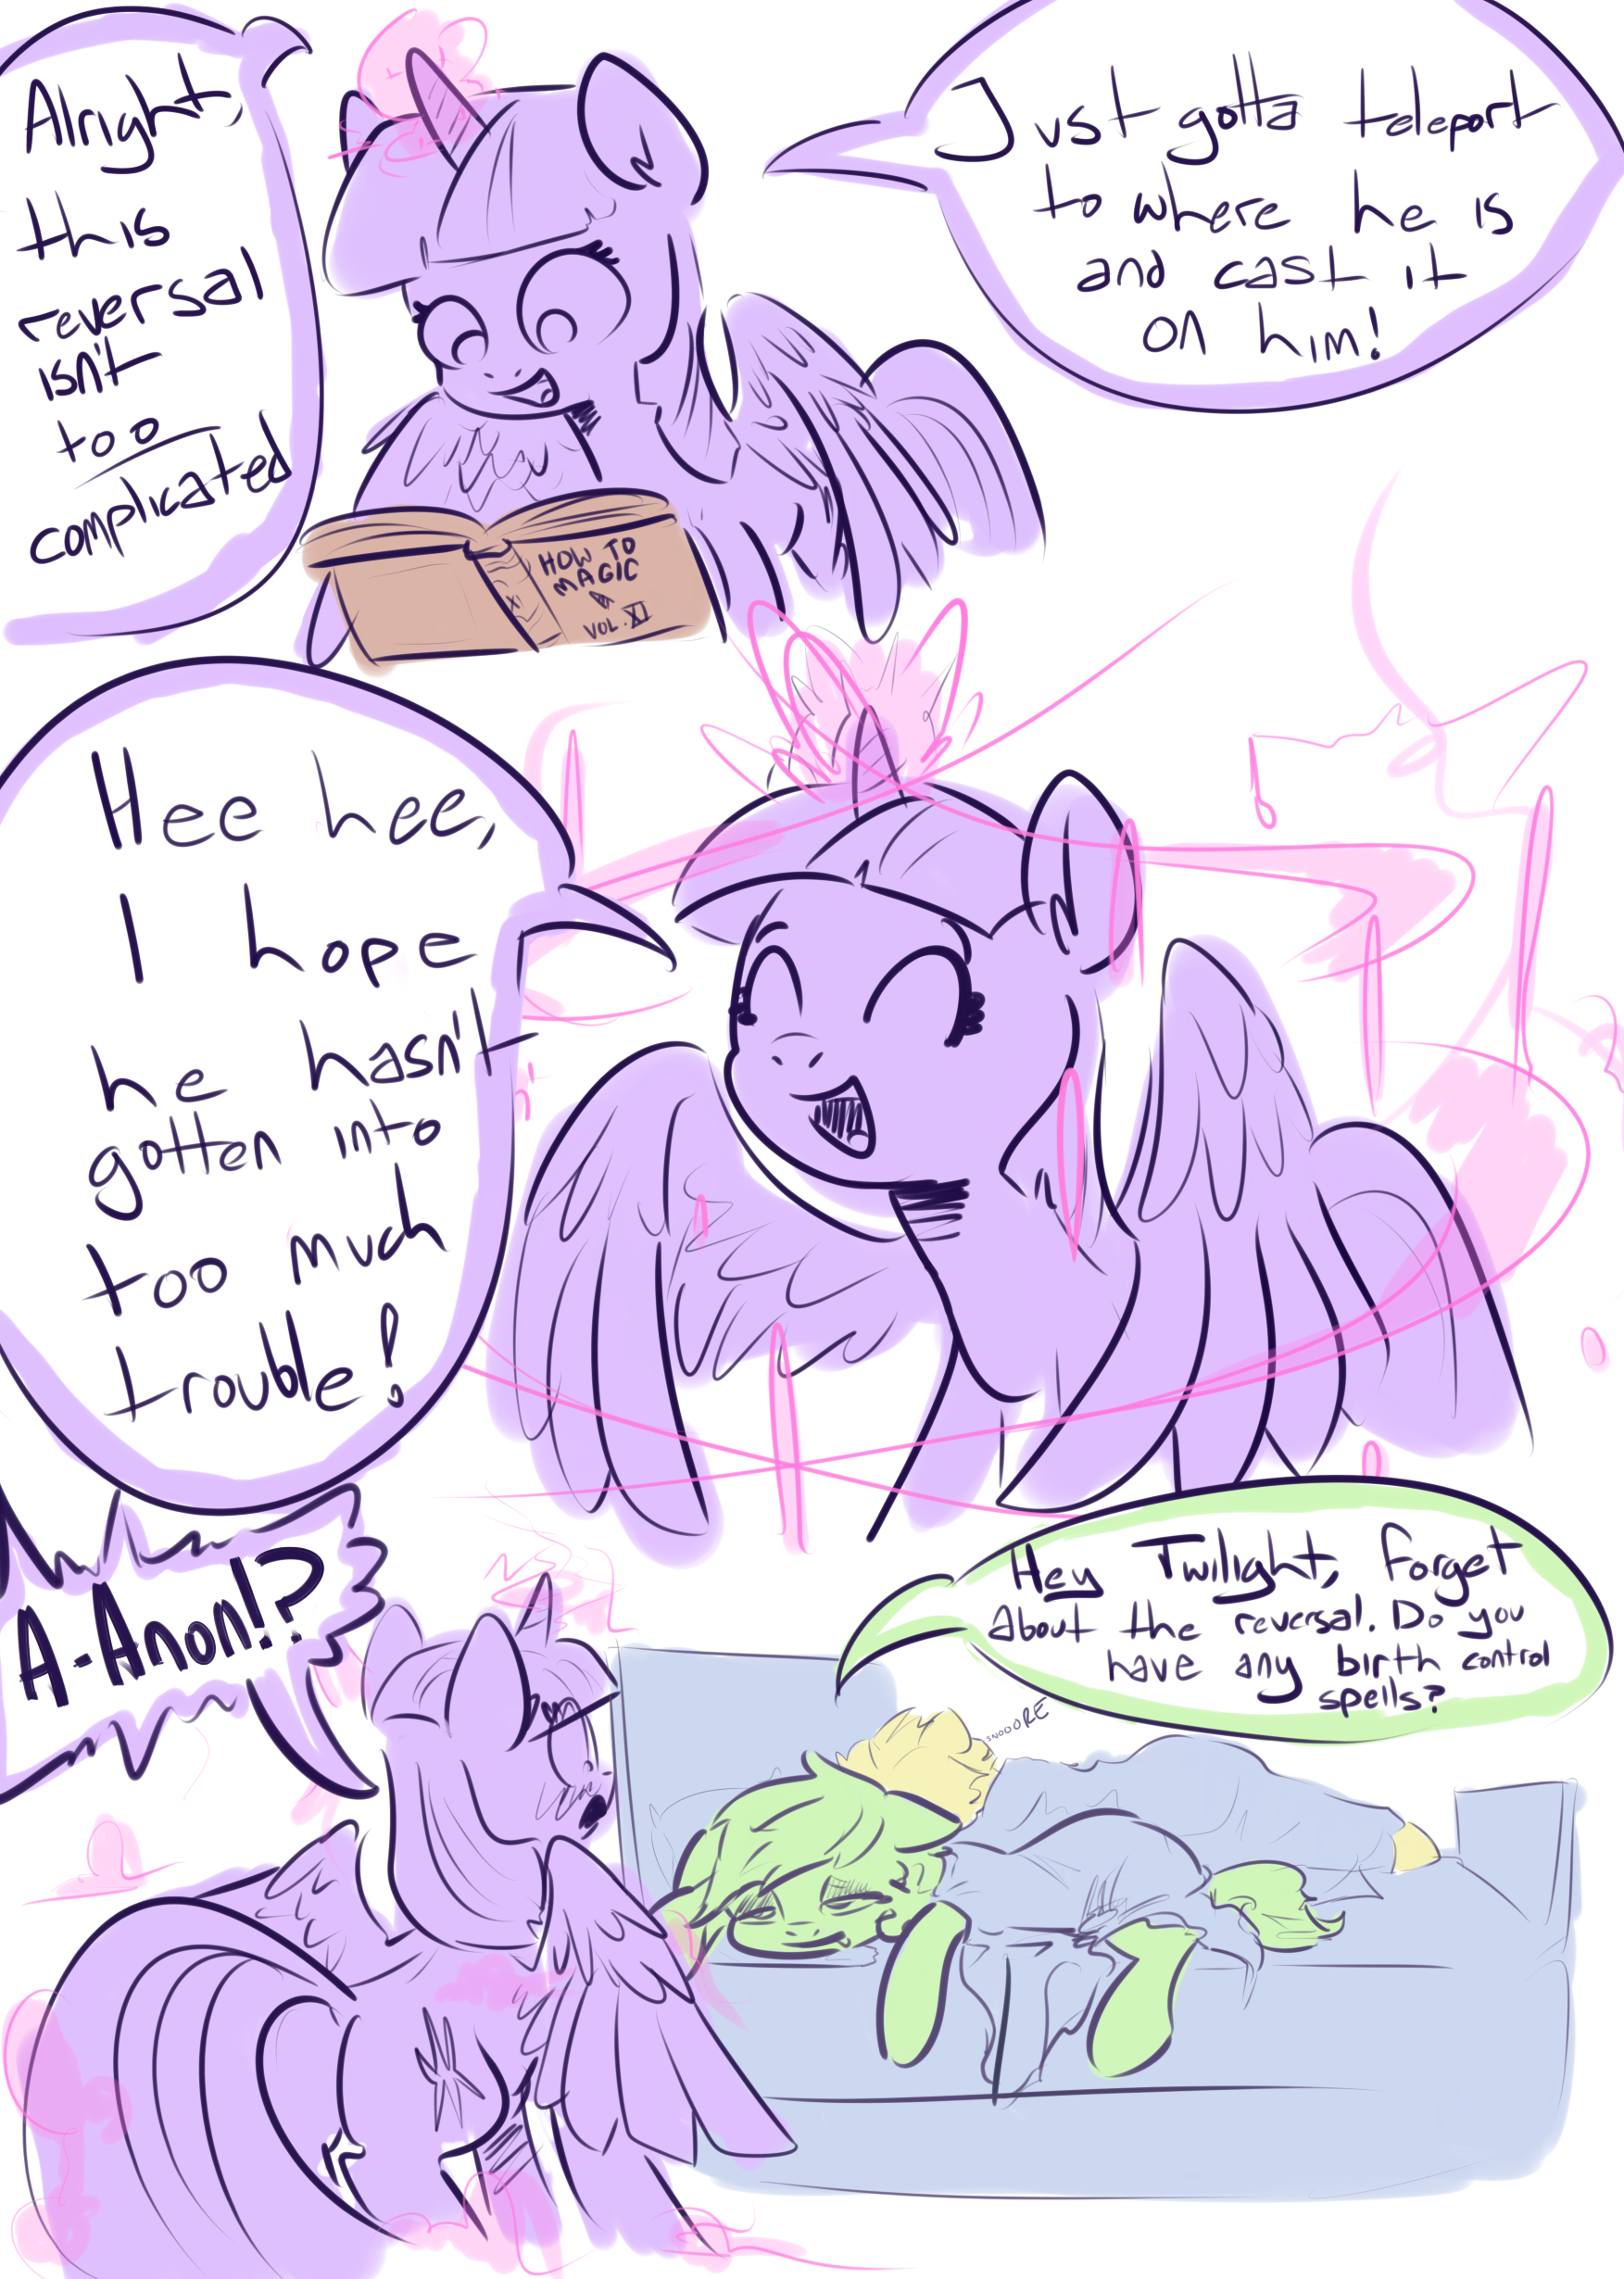 Anon Mlp Comic go through the alphabet before someone posts a my little